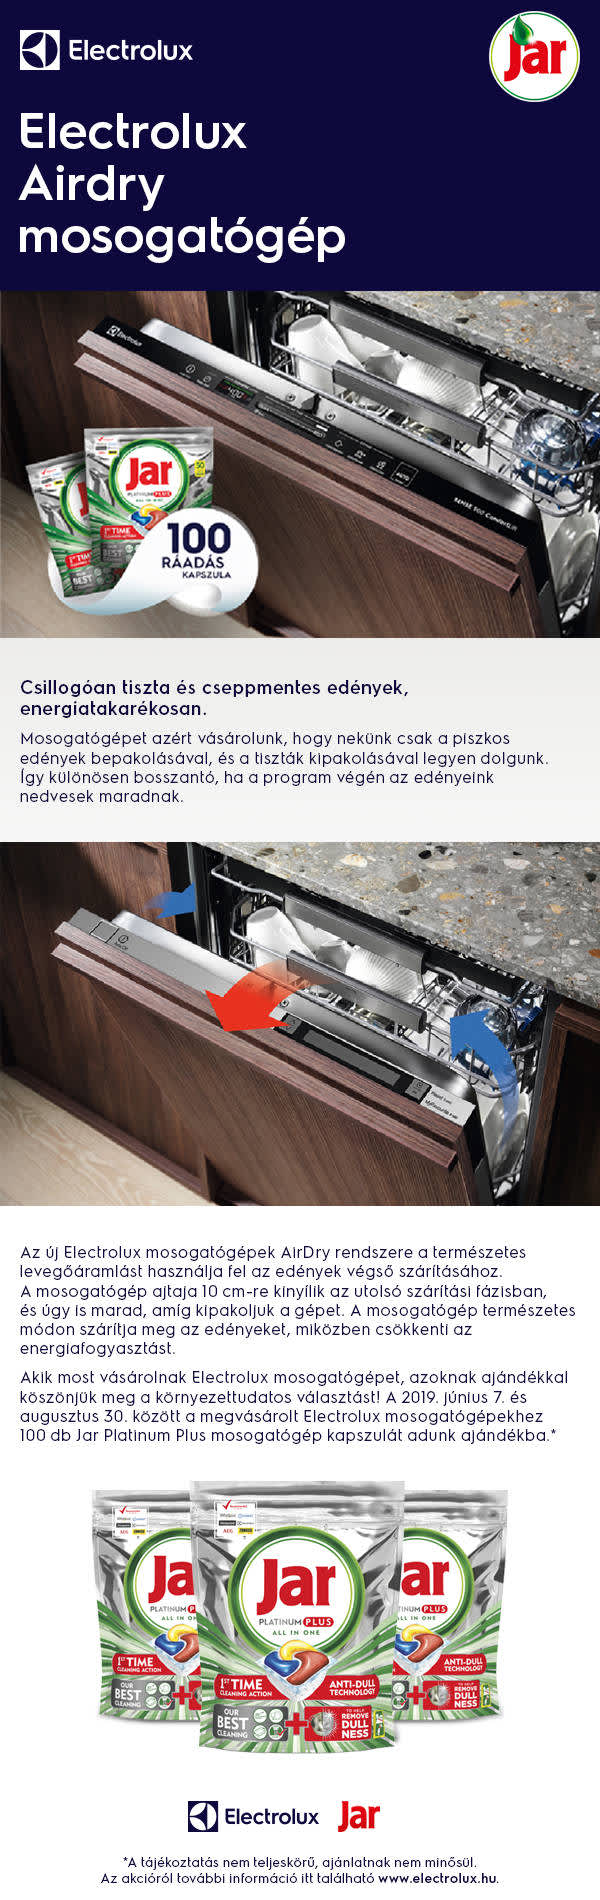 PG_19072_Electrolux-contest_AirDry-mosogatogep